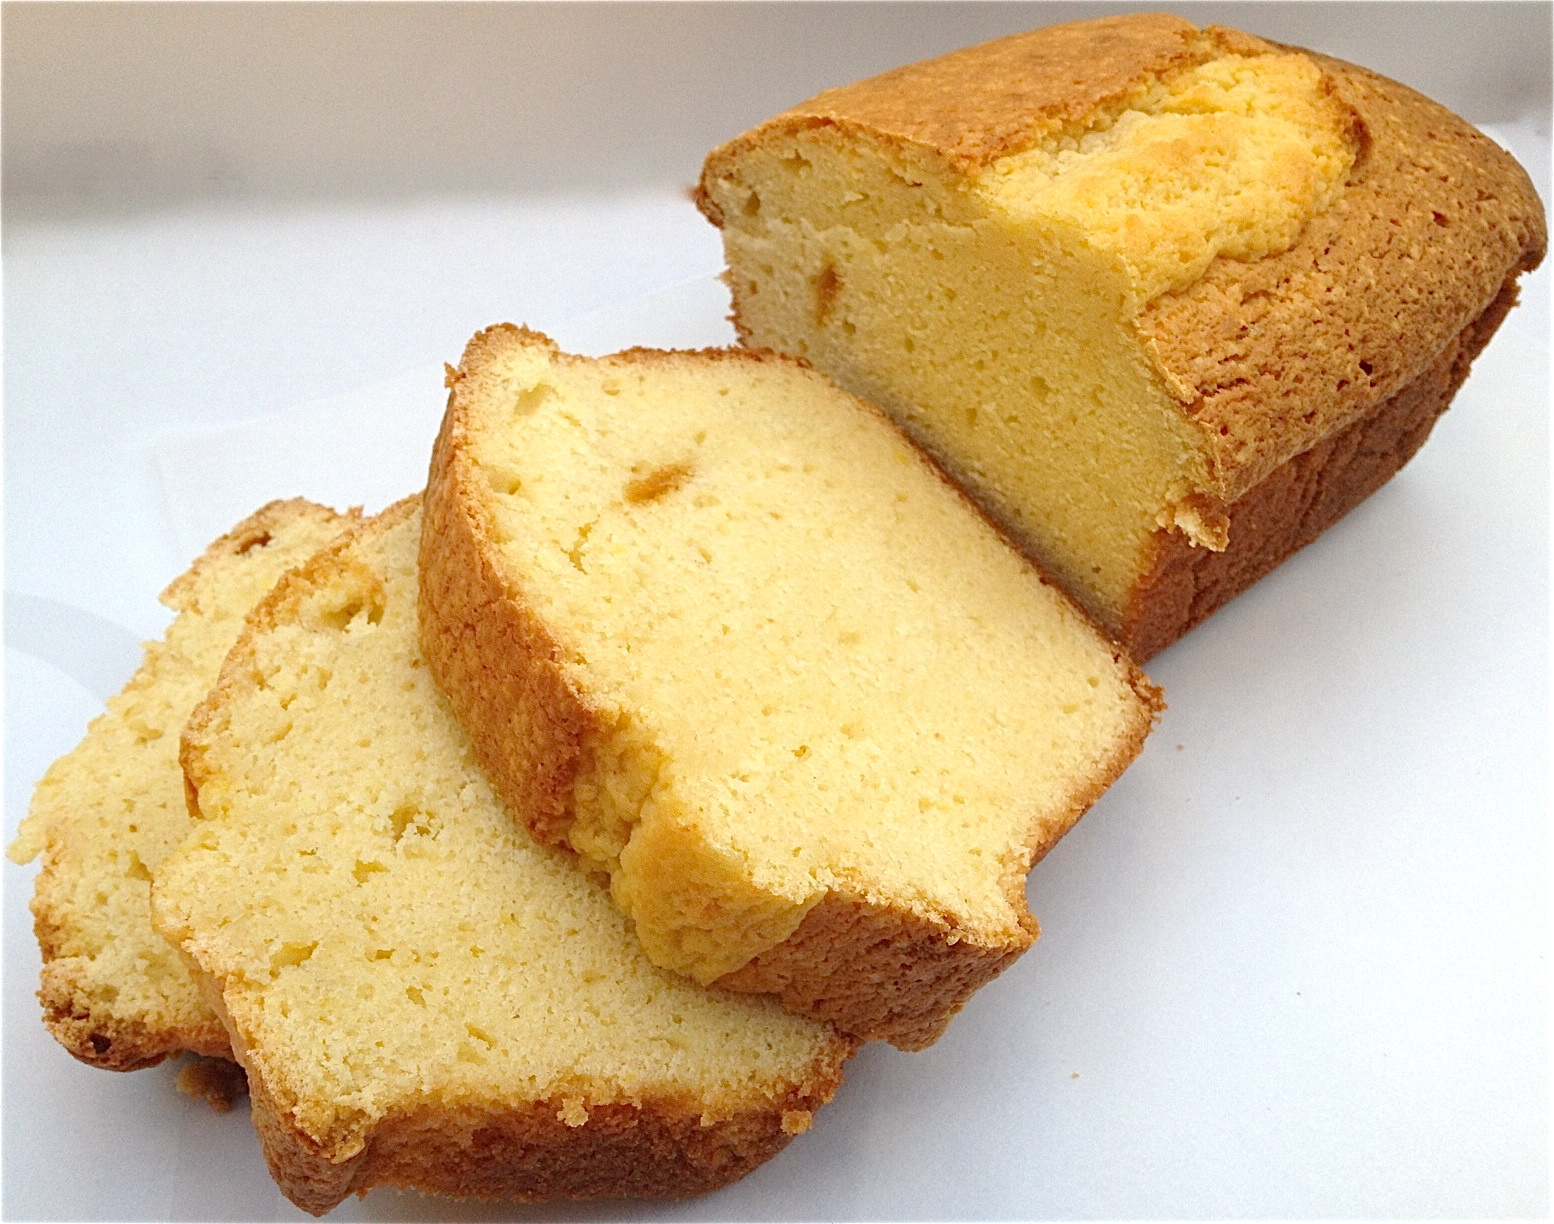 Beyond Bourke Street: Sour Cream Lemon Pound Cake